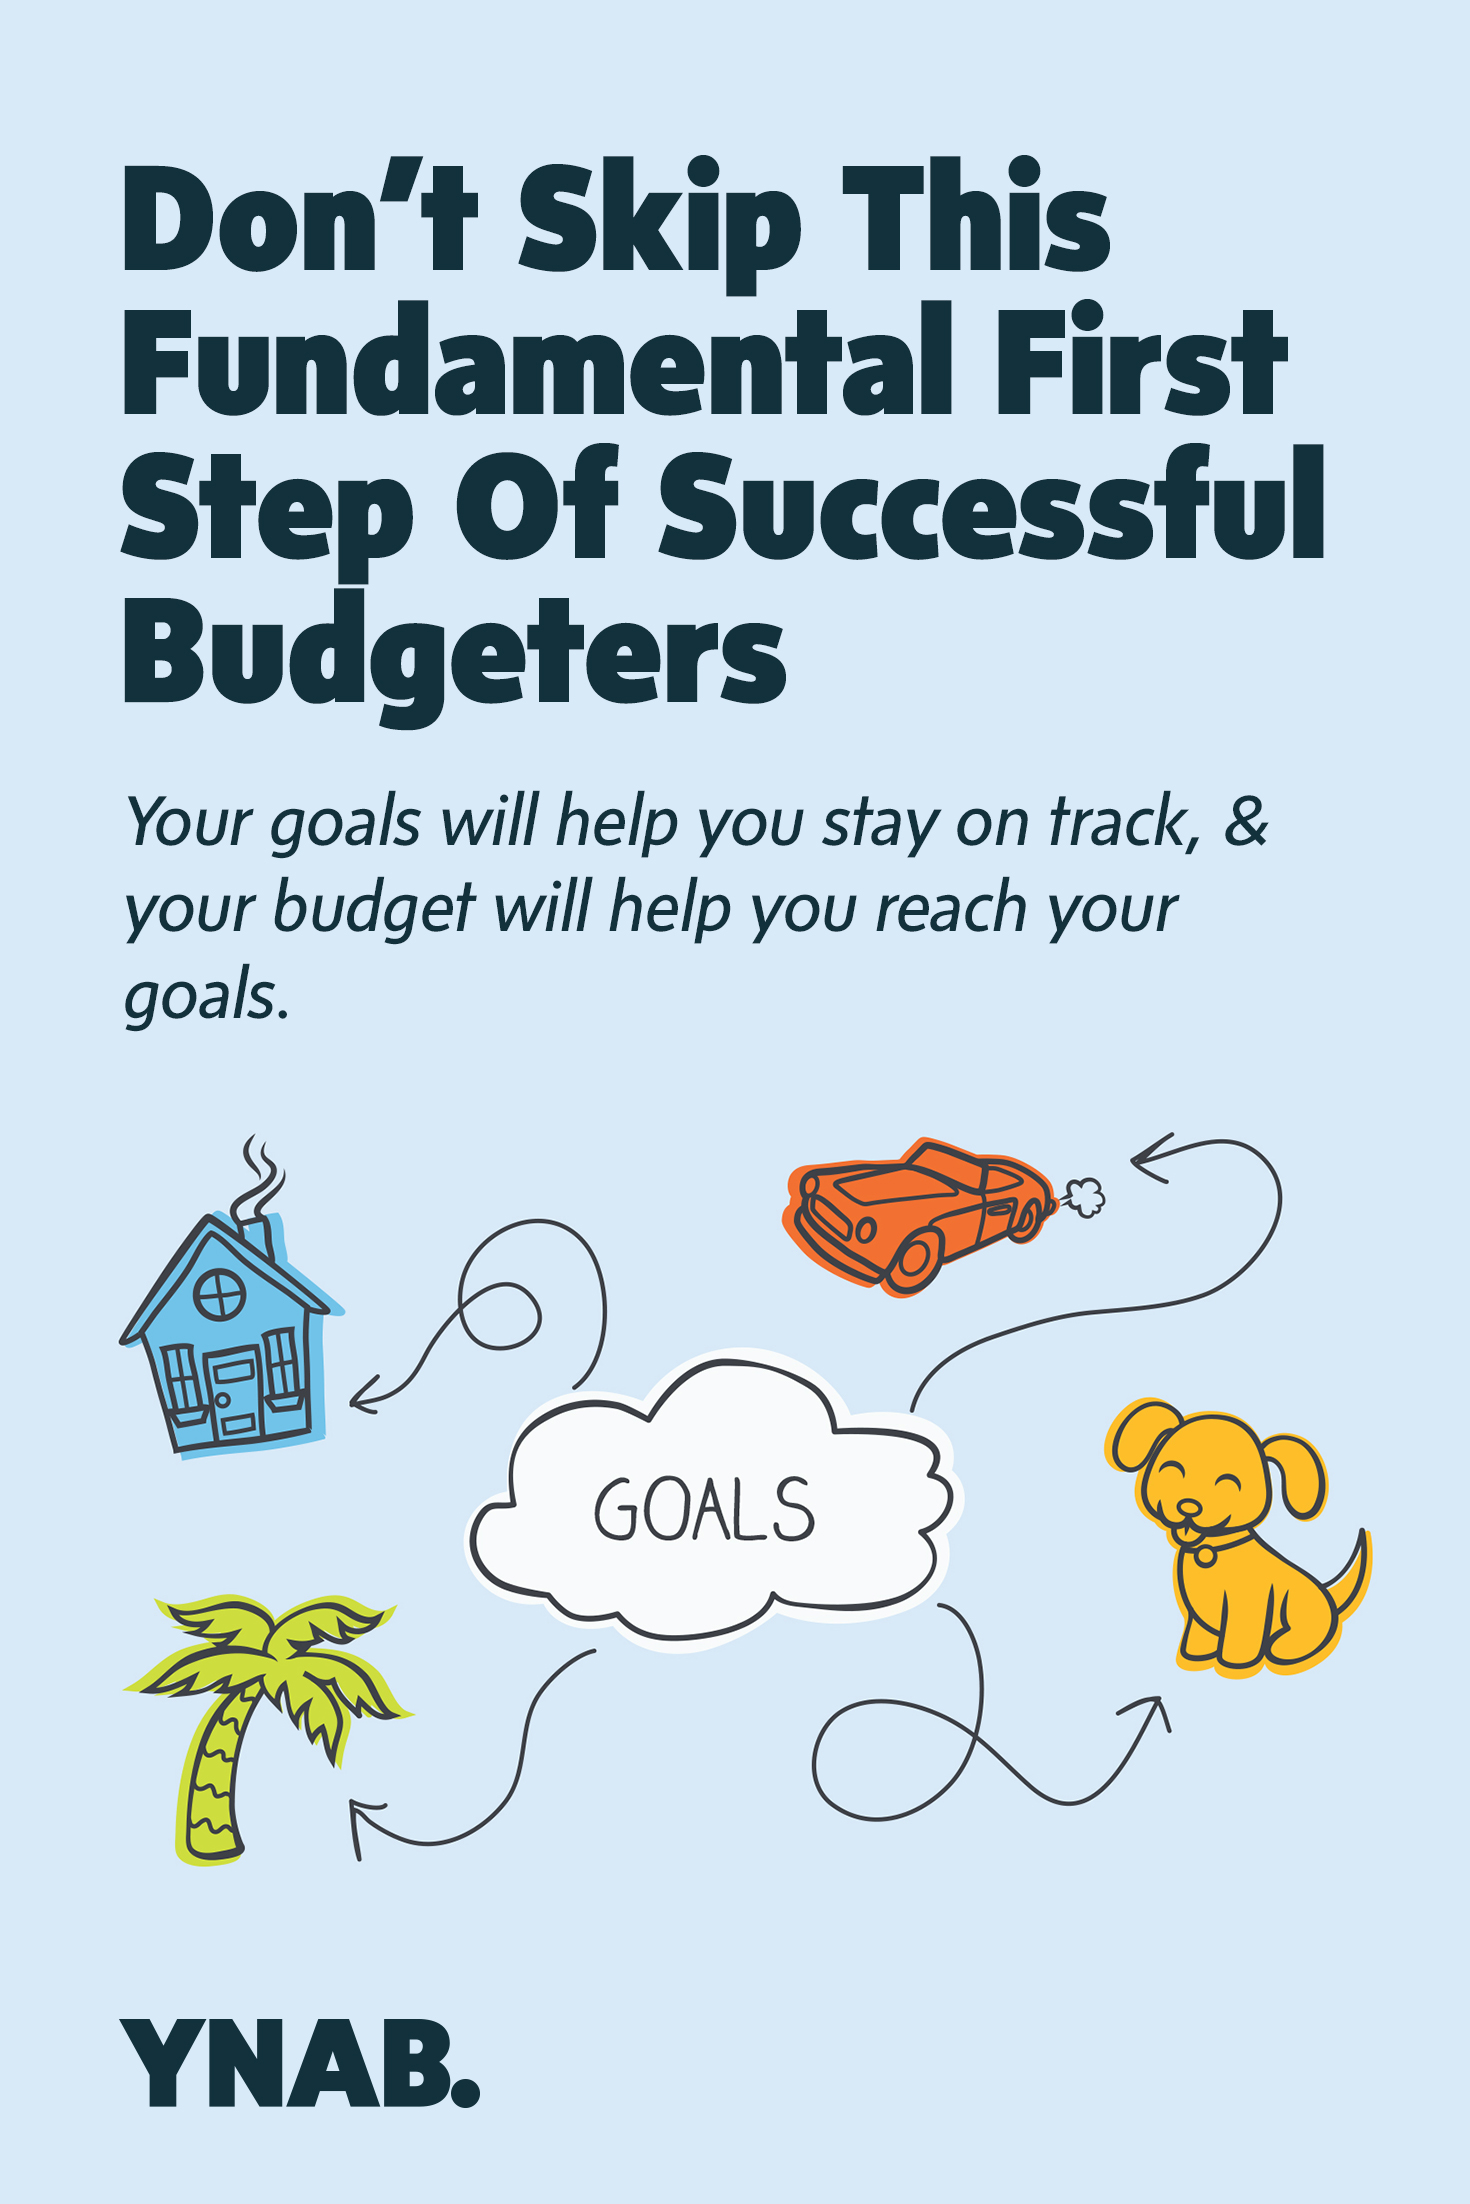 Step one: Goals. Future house? Wedding? Baby? Exotic vacation? Your goals and priorities are powerful and key to successful budgeting. | YNAB